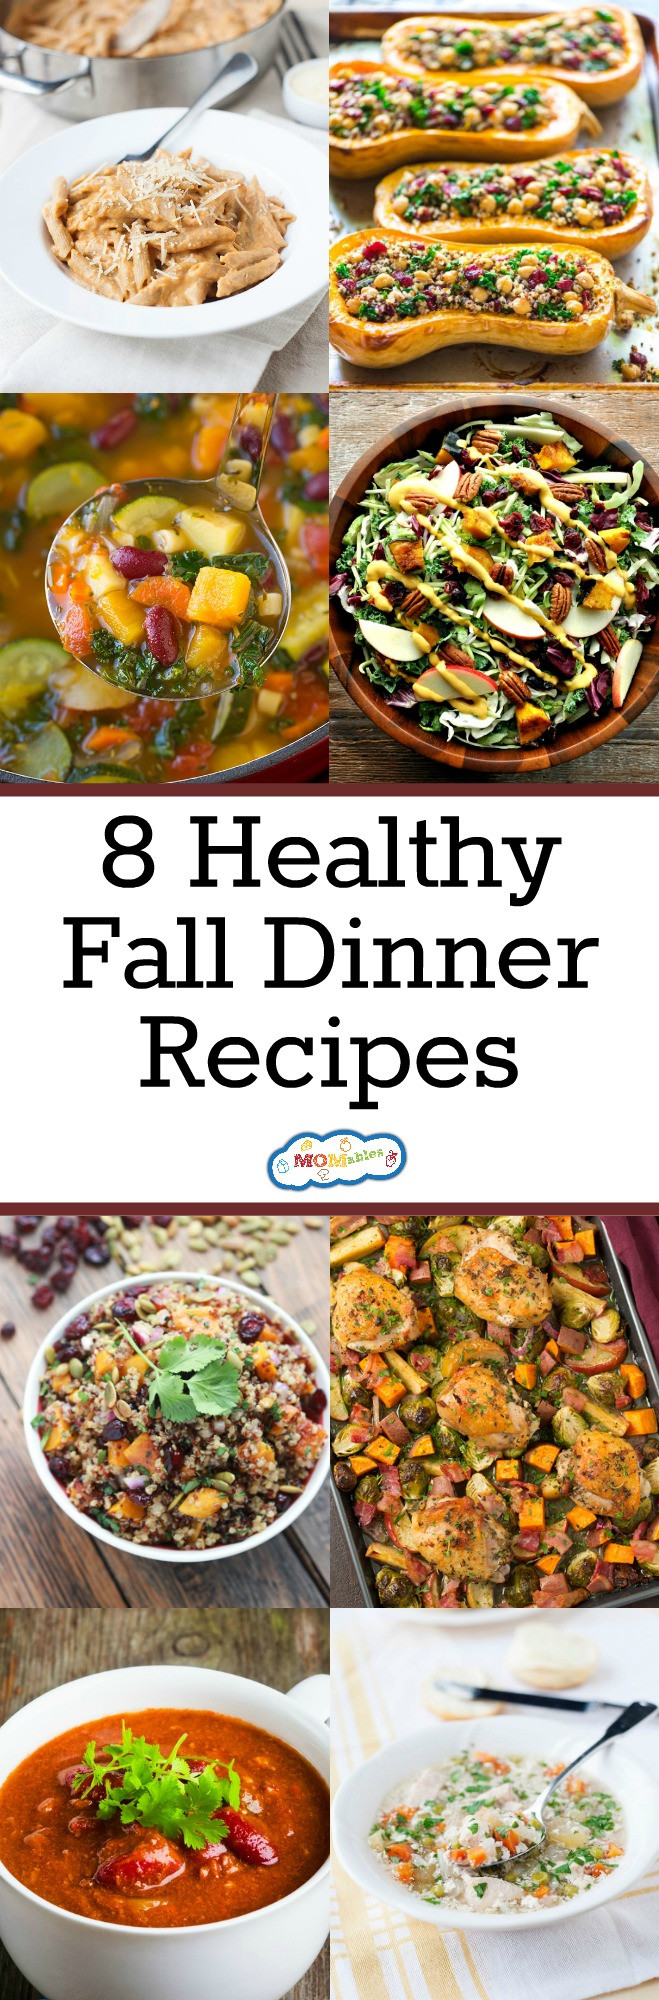 Fall Recipes For Dinner  8 Healthy Fall Dinner Recipes MOMables Good Food